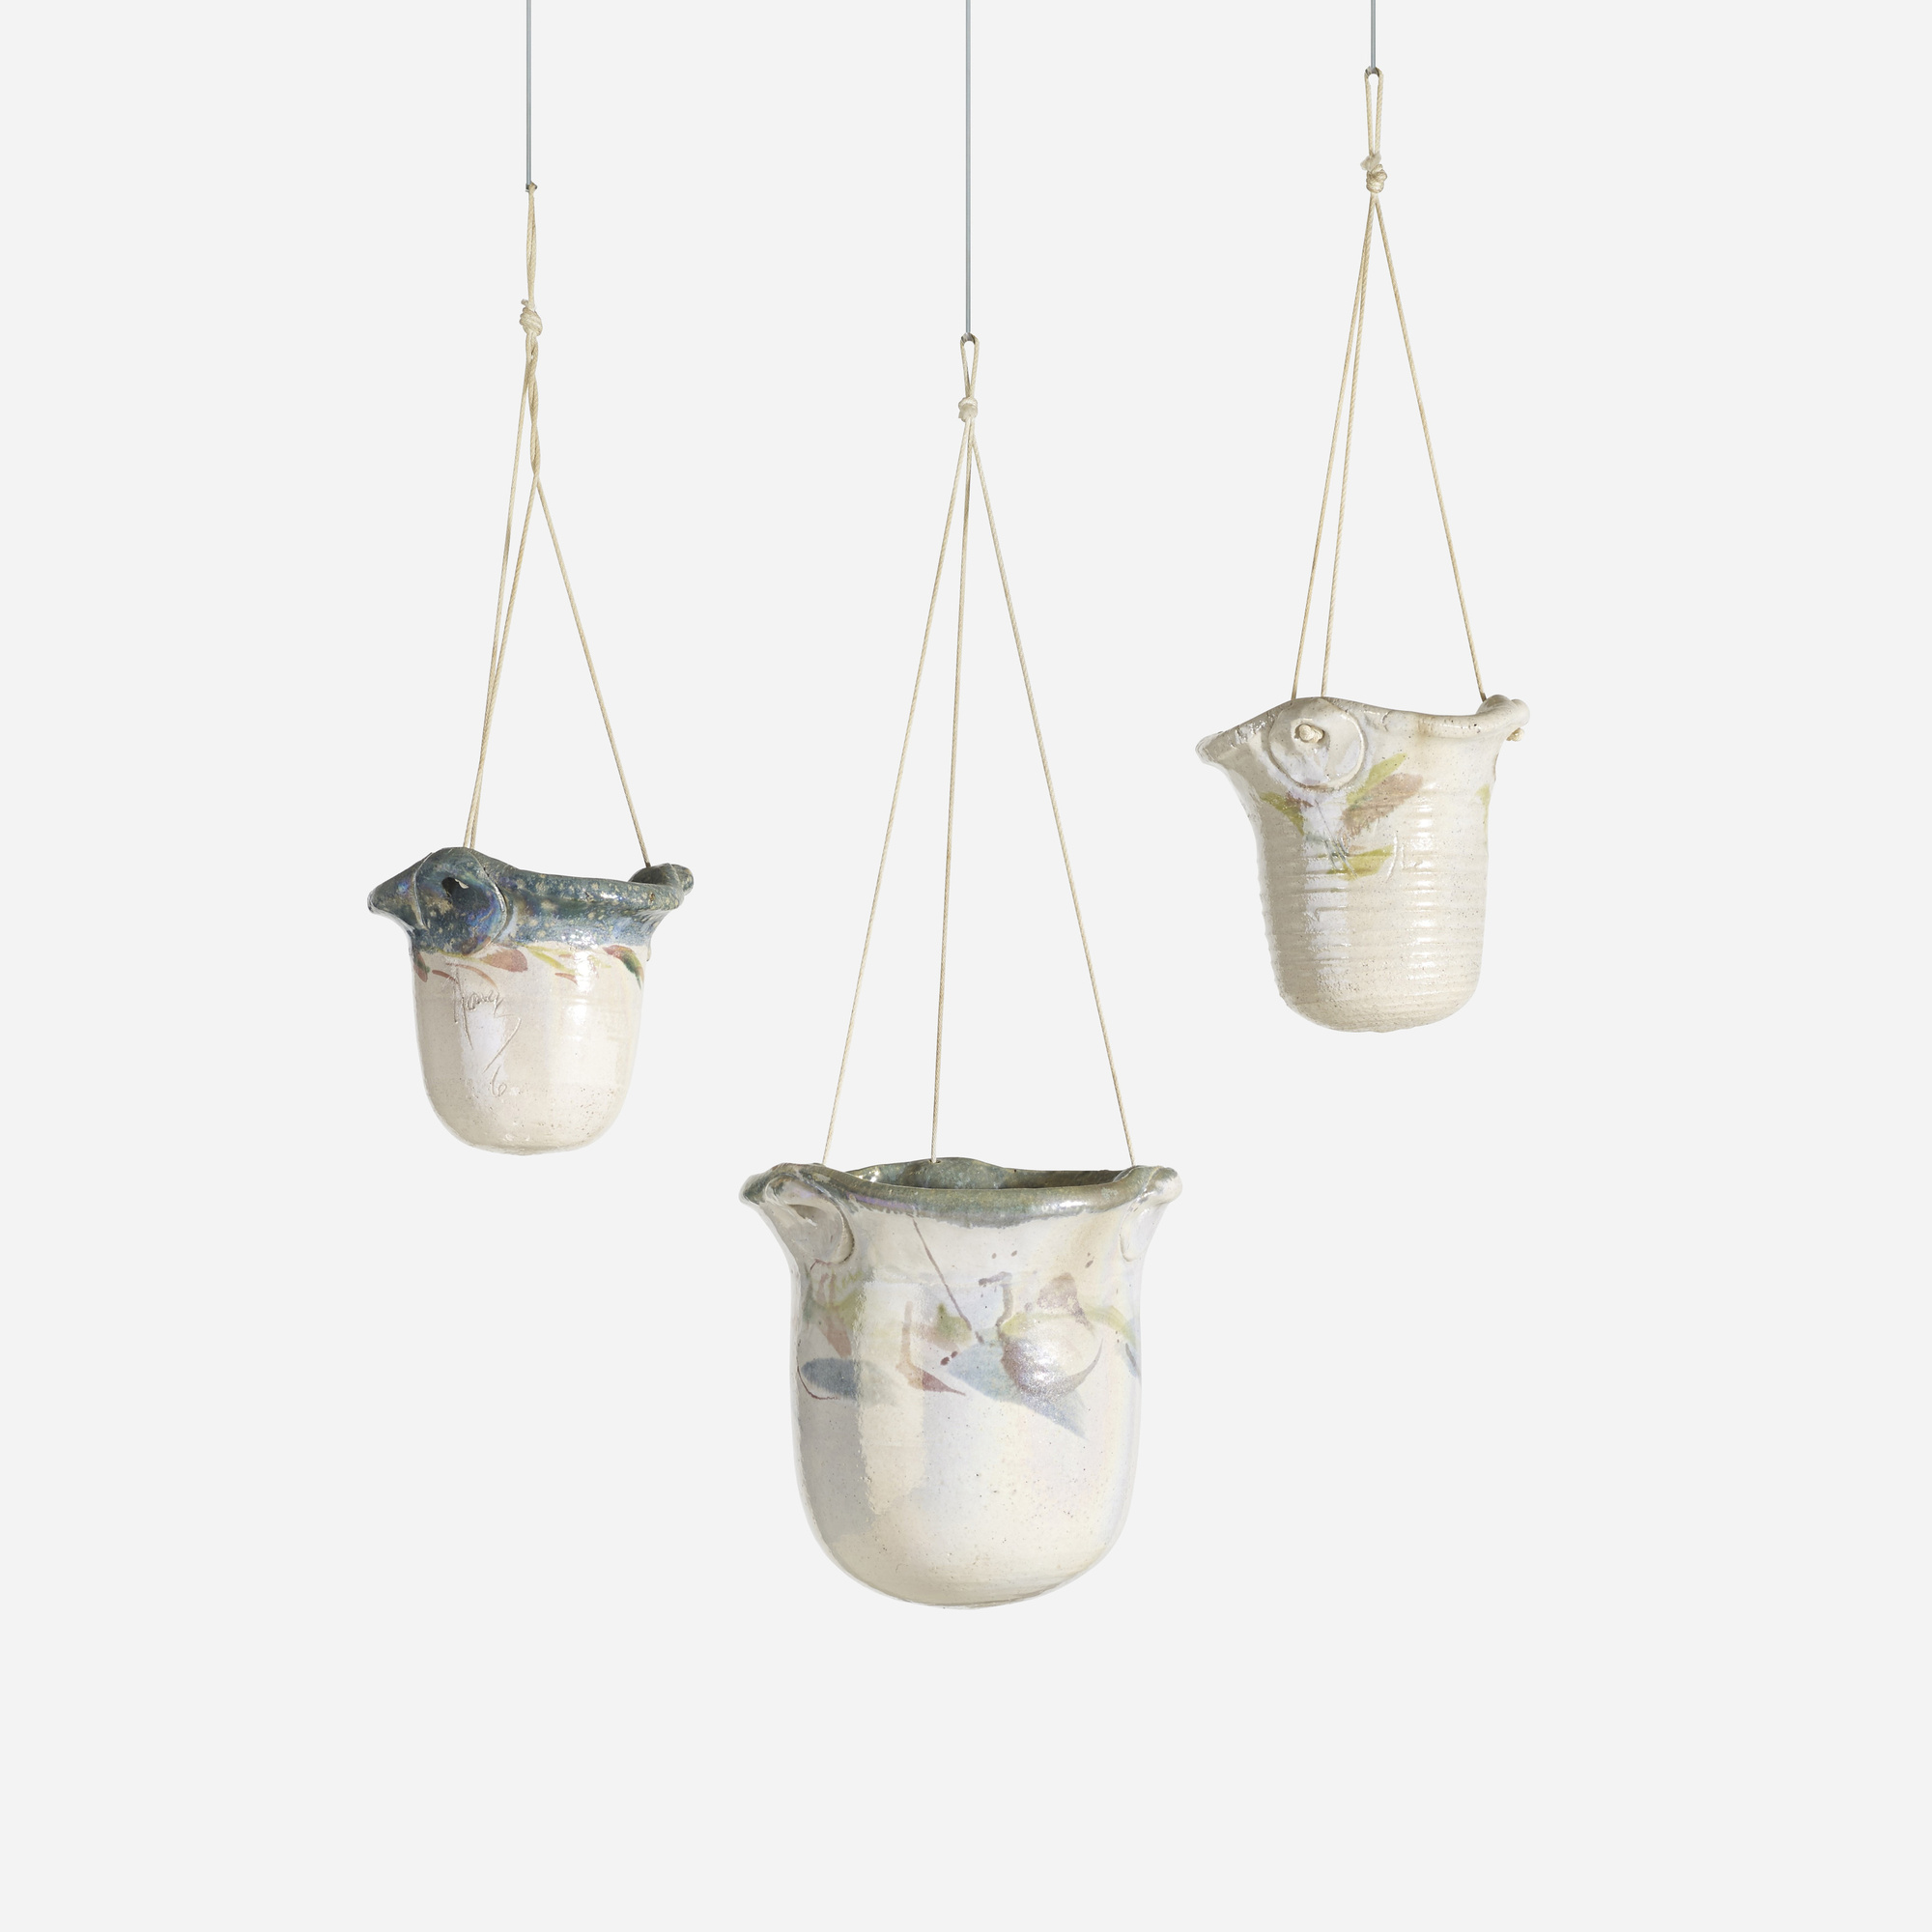 175: Nancy Jurs / hanging pots, set of three (1 of 2)